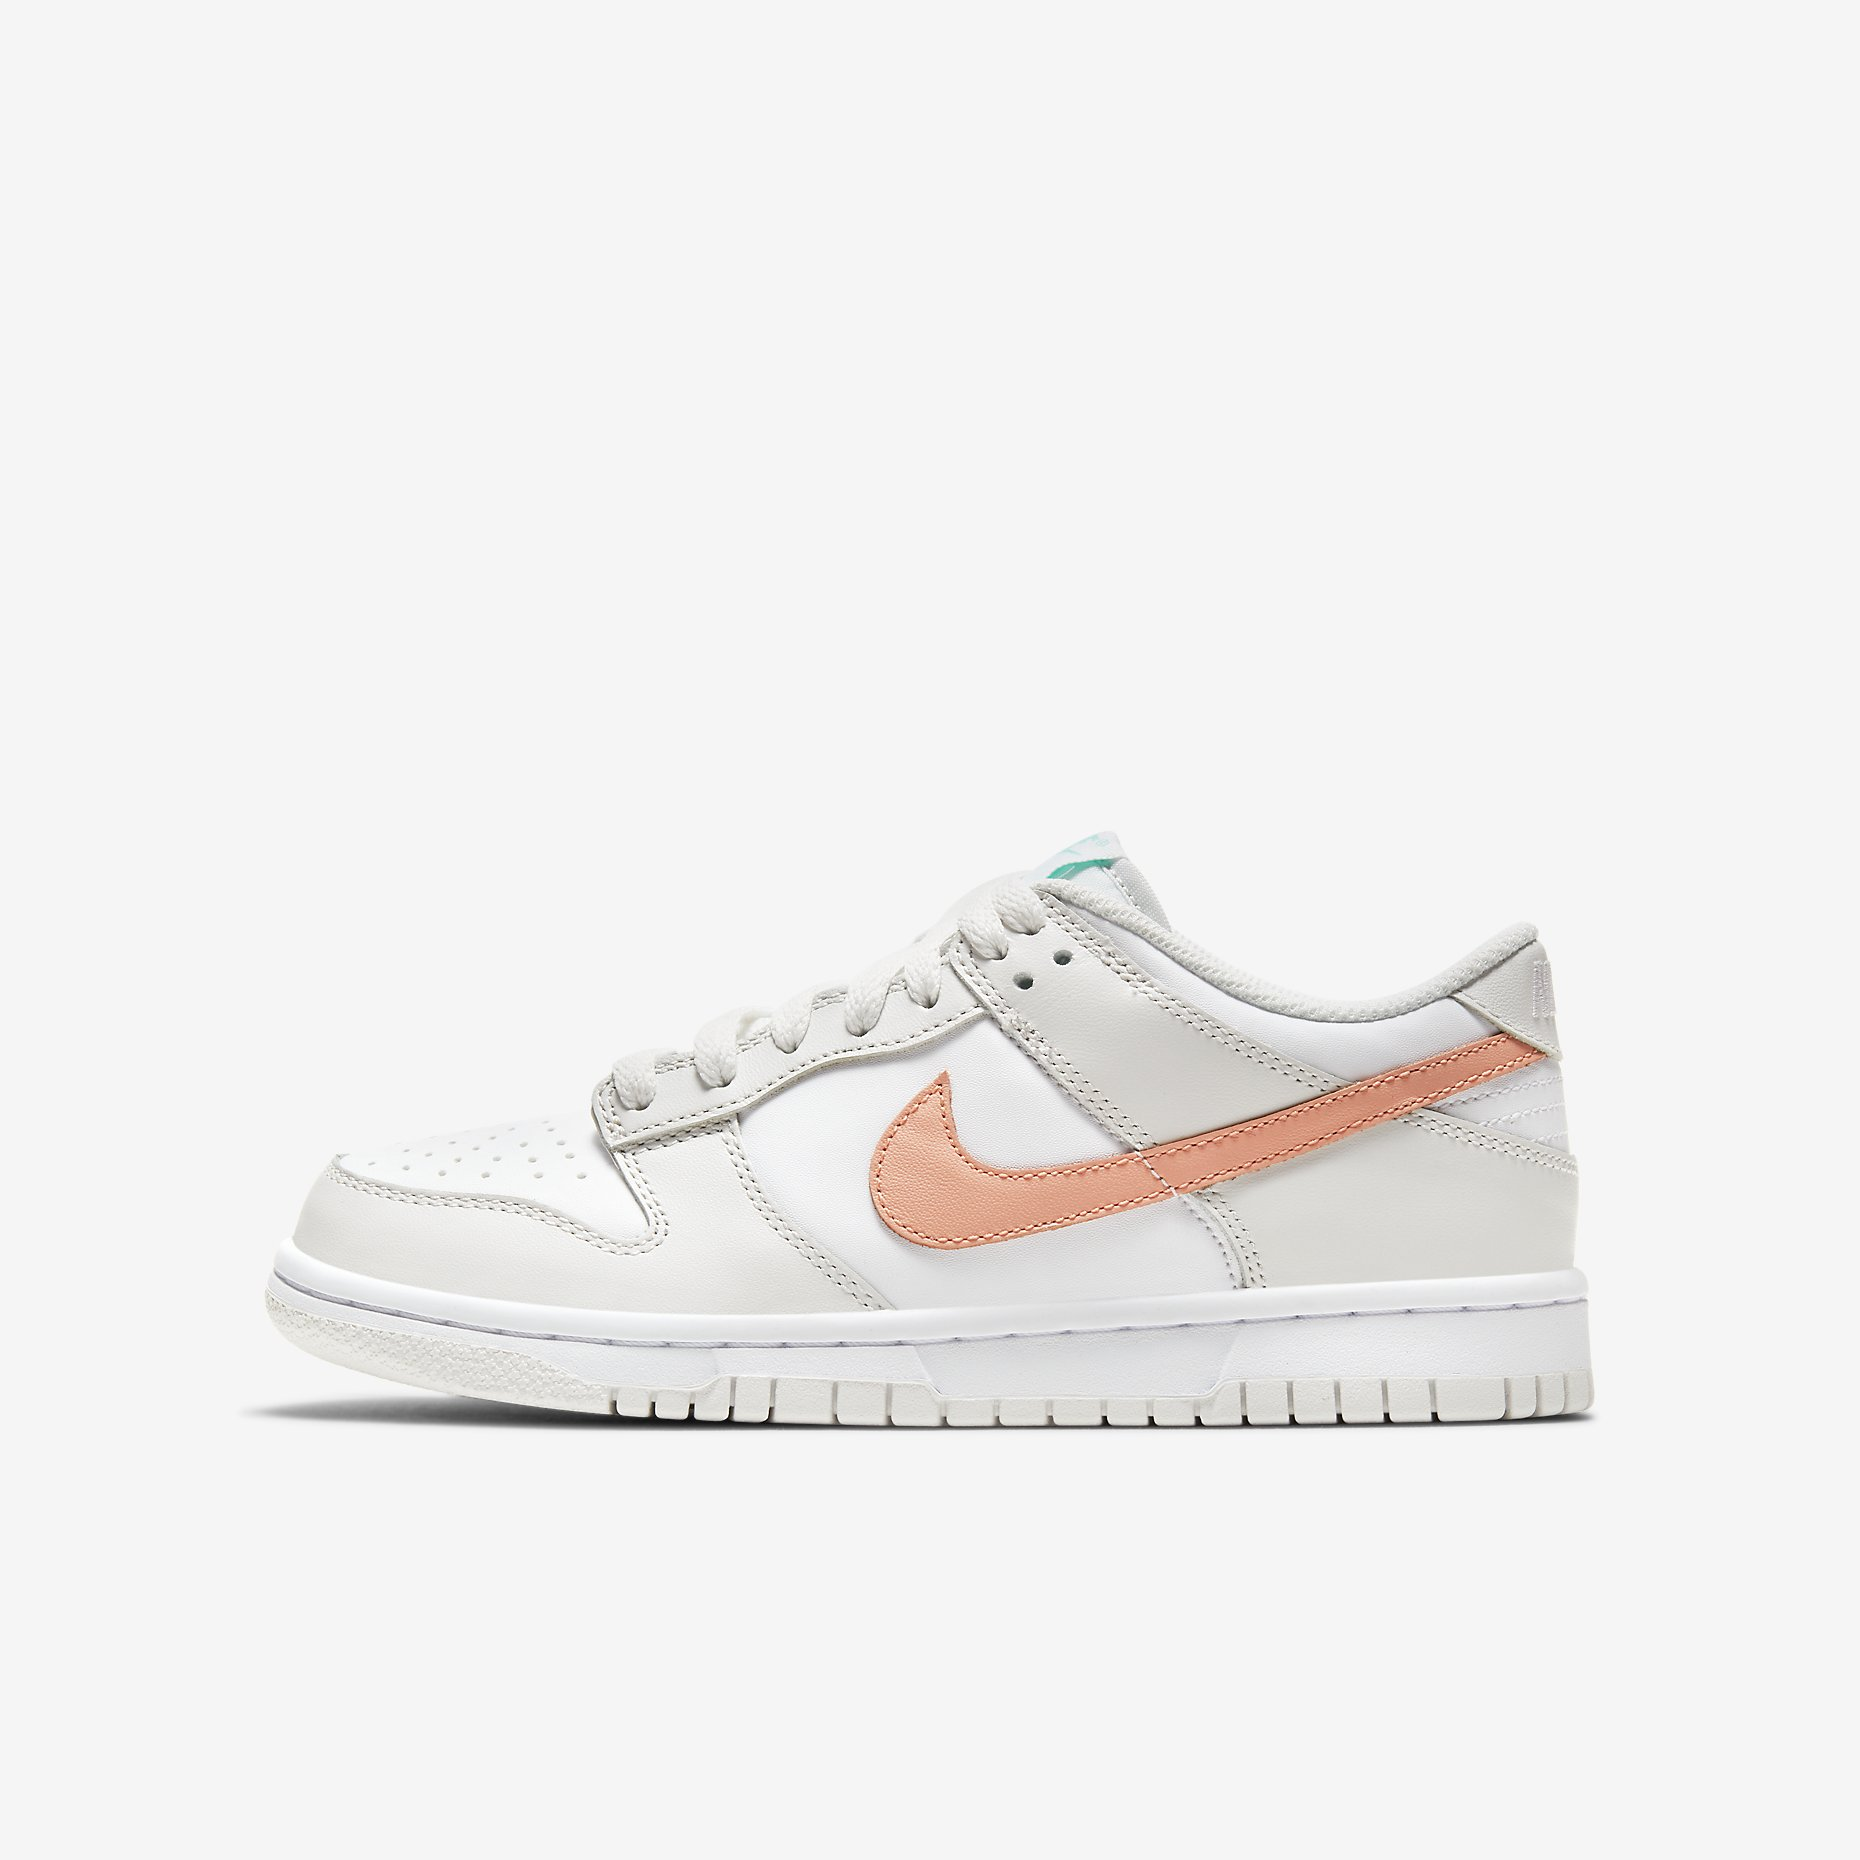 Nike Dunk Low GS 'Platinum Tint/Crimson Bliss'}